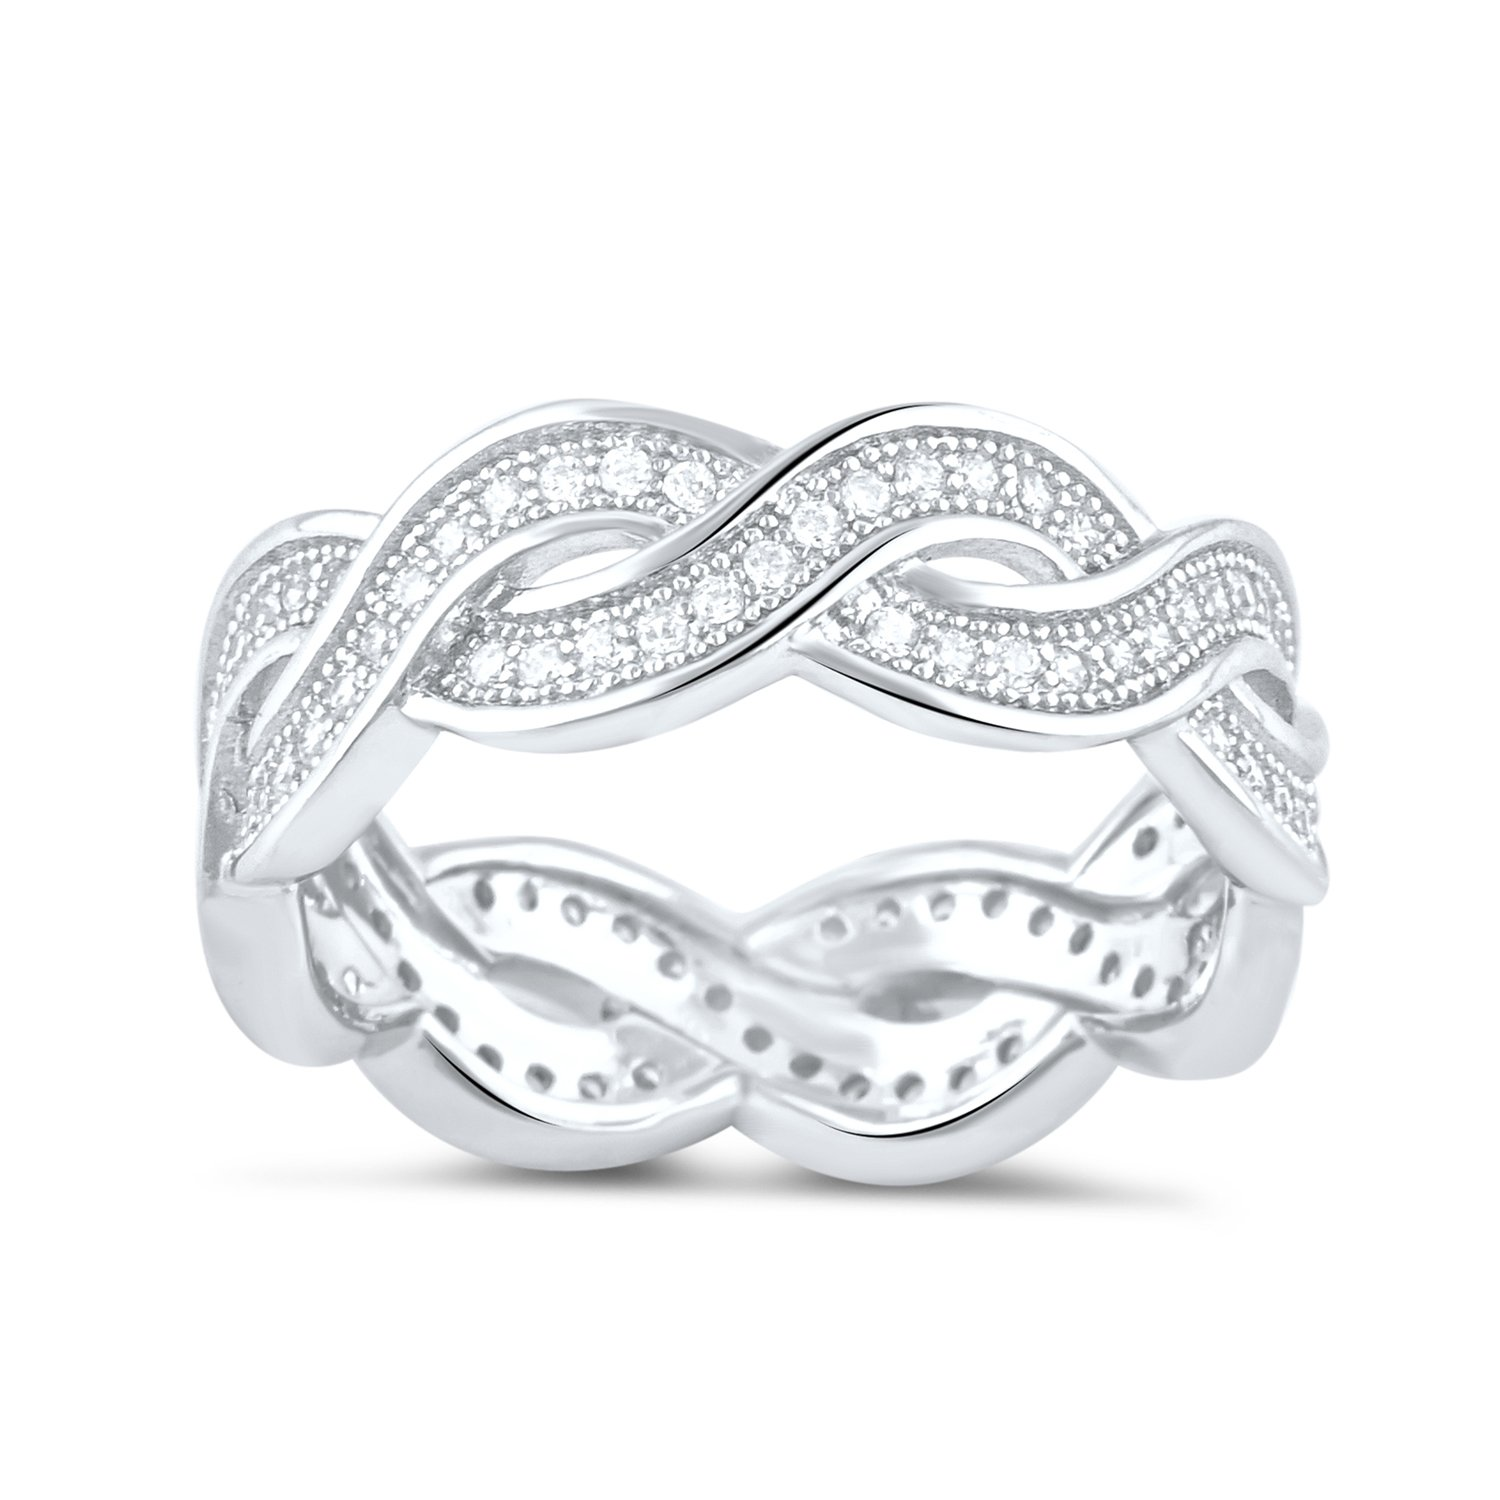 Sterling Silver Cz Infinity Eternity Ring - Size 6